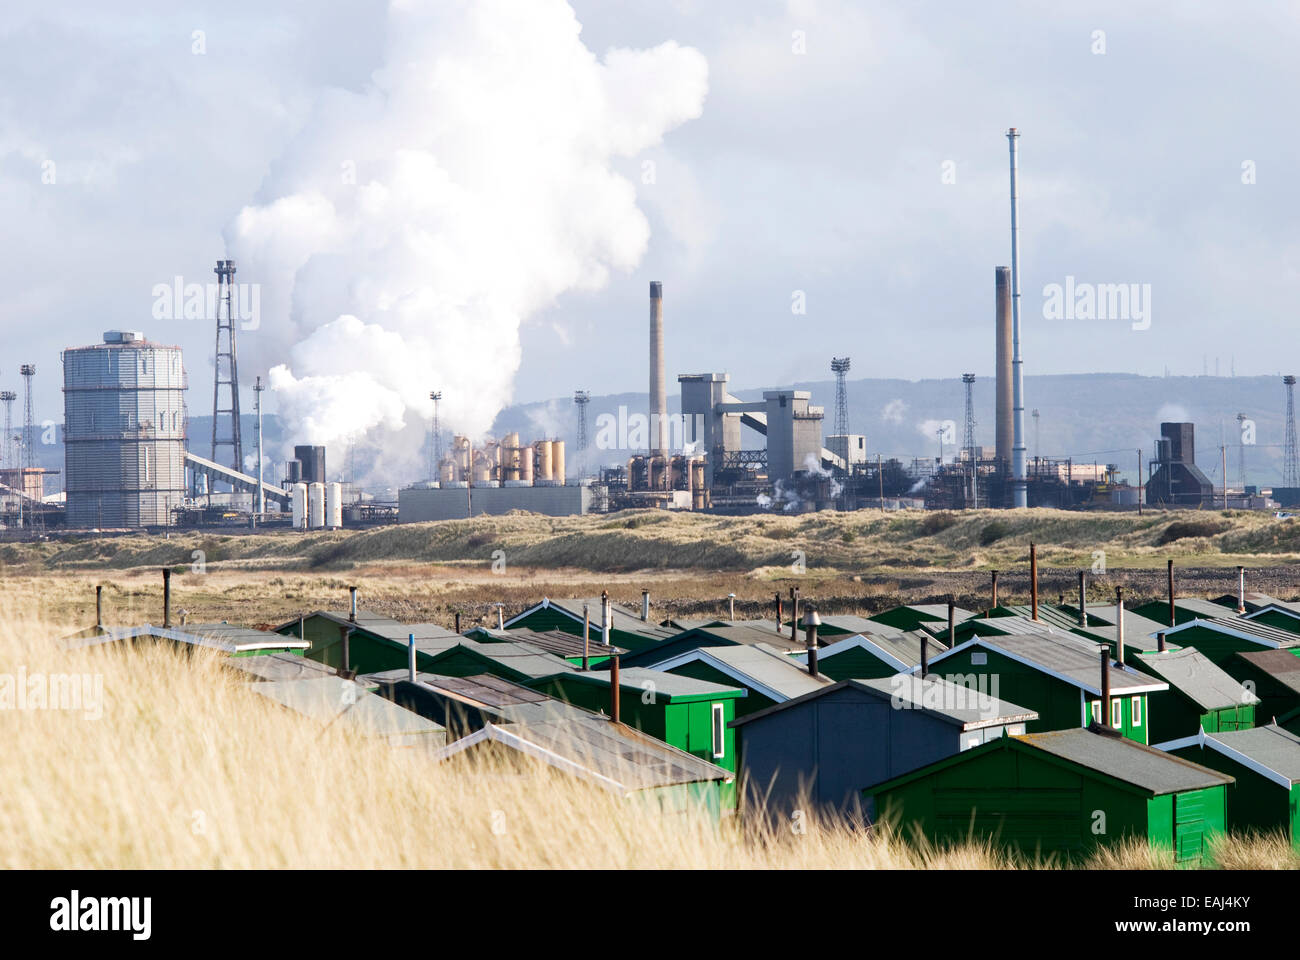 Green sheds at Paddys Hole, South Gare, Teesside with Tata Steel Redcar works in the background - Stock Image